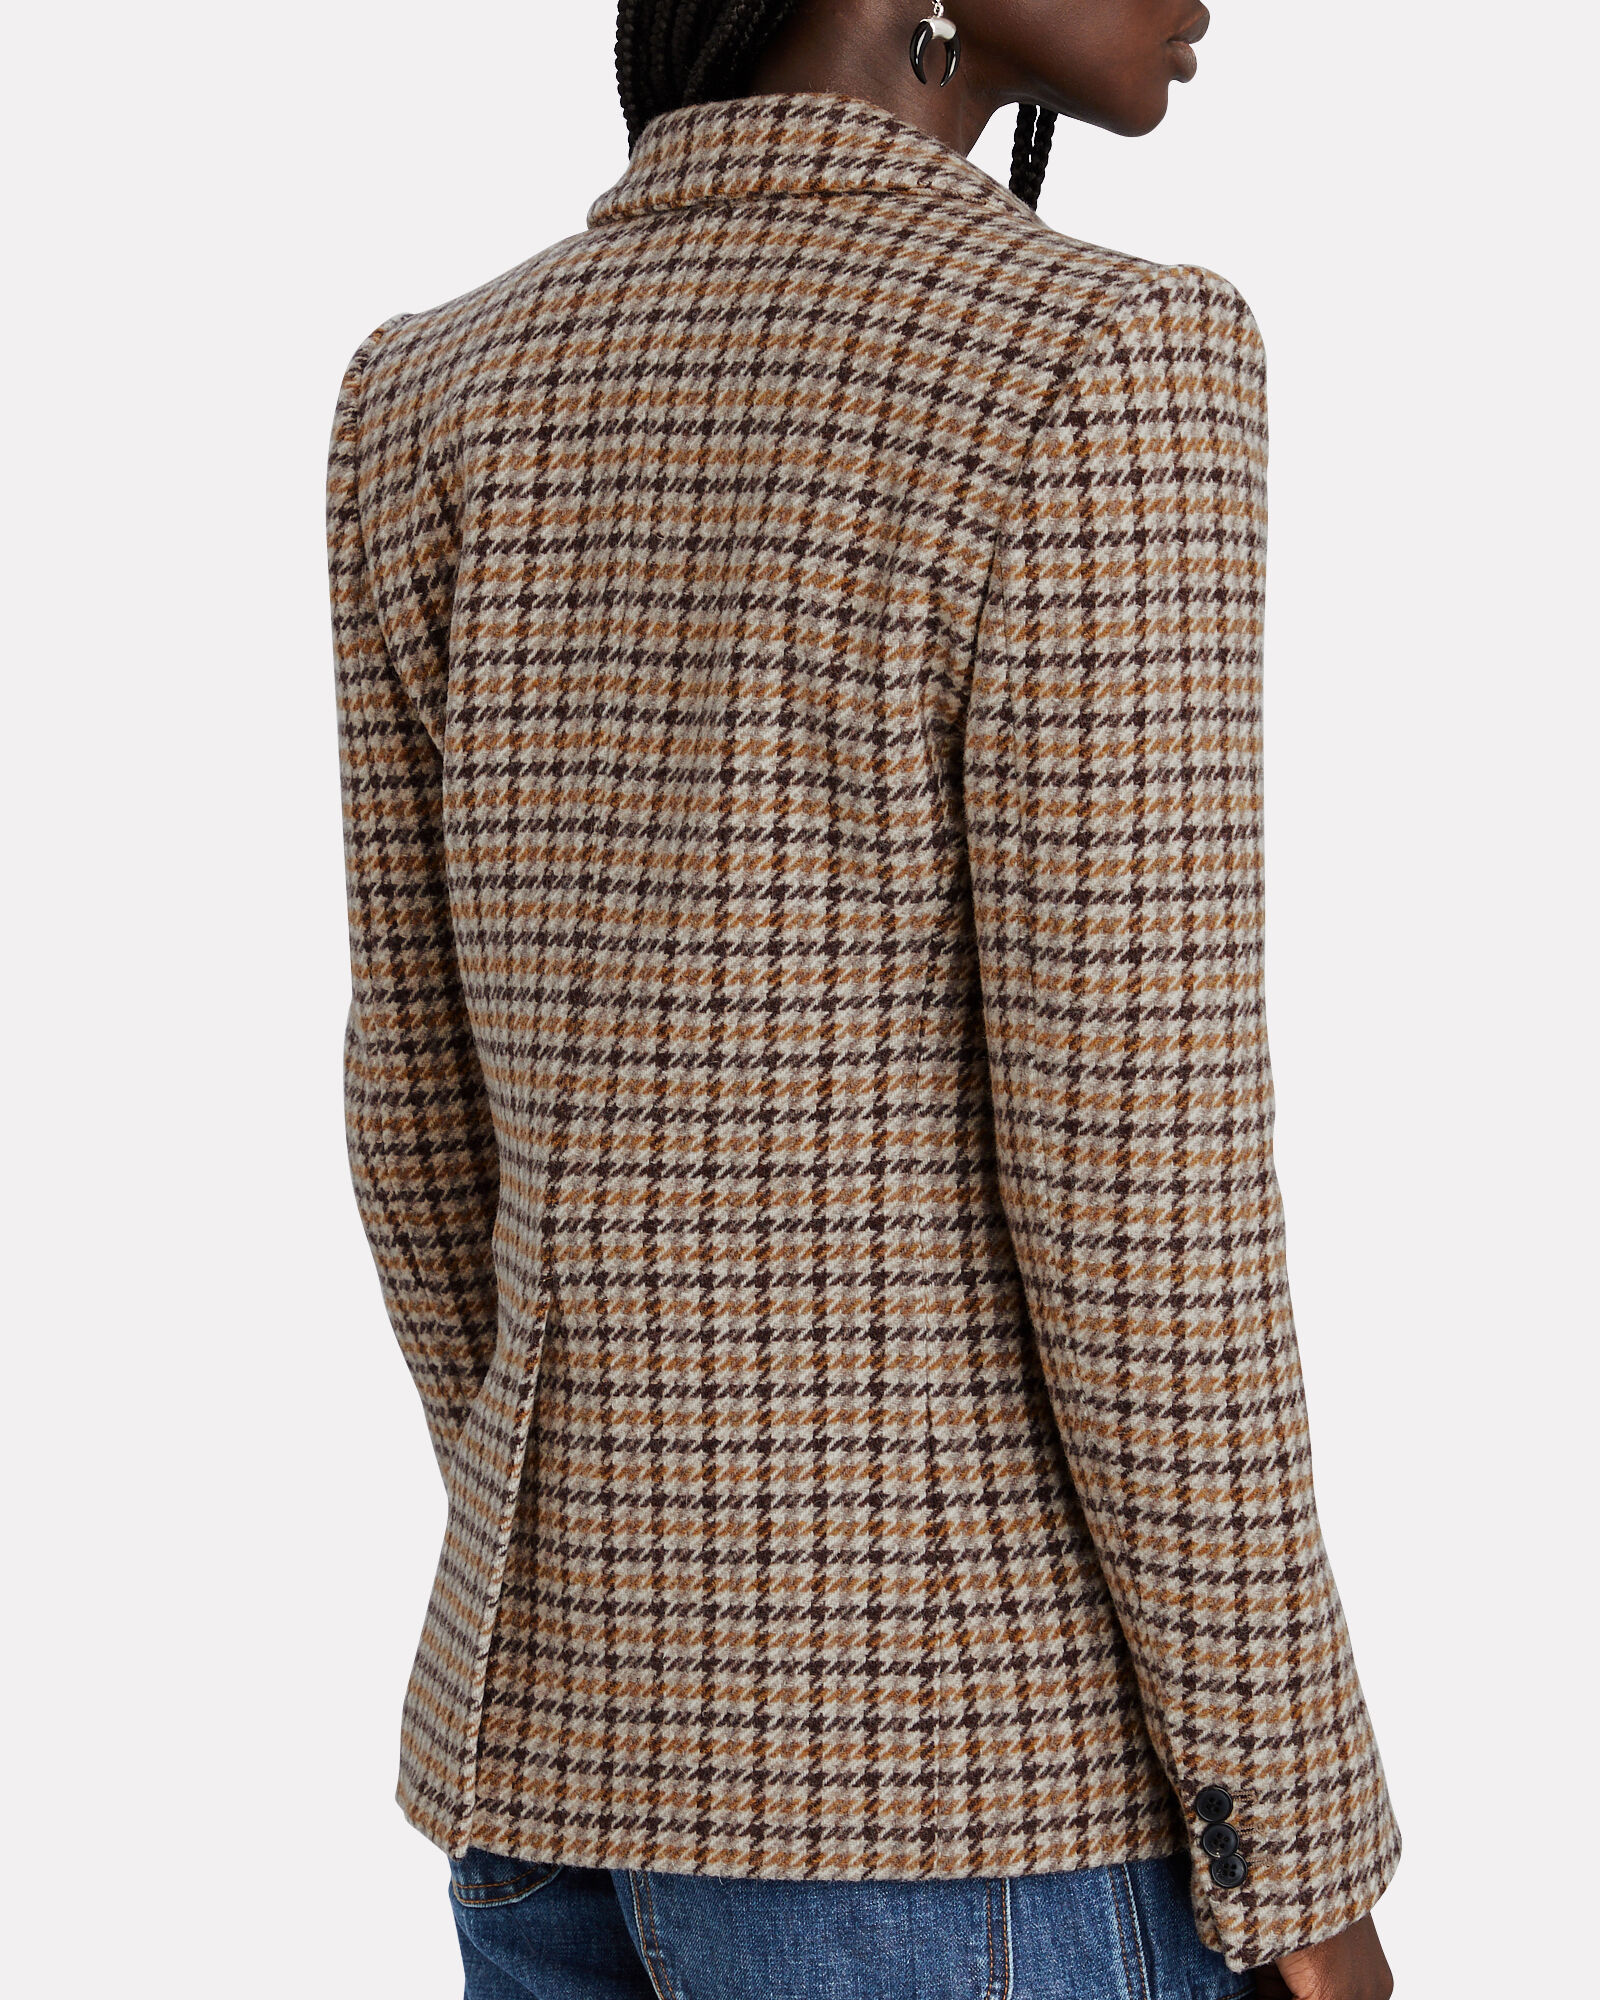 Kerstin Virgin Wool Houndstooth Blazer, , hi-res